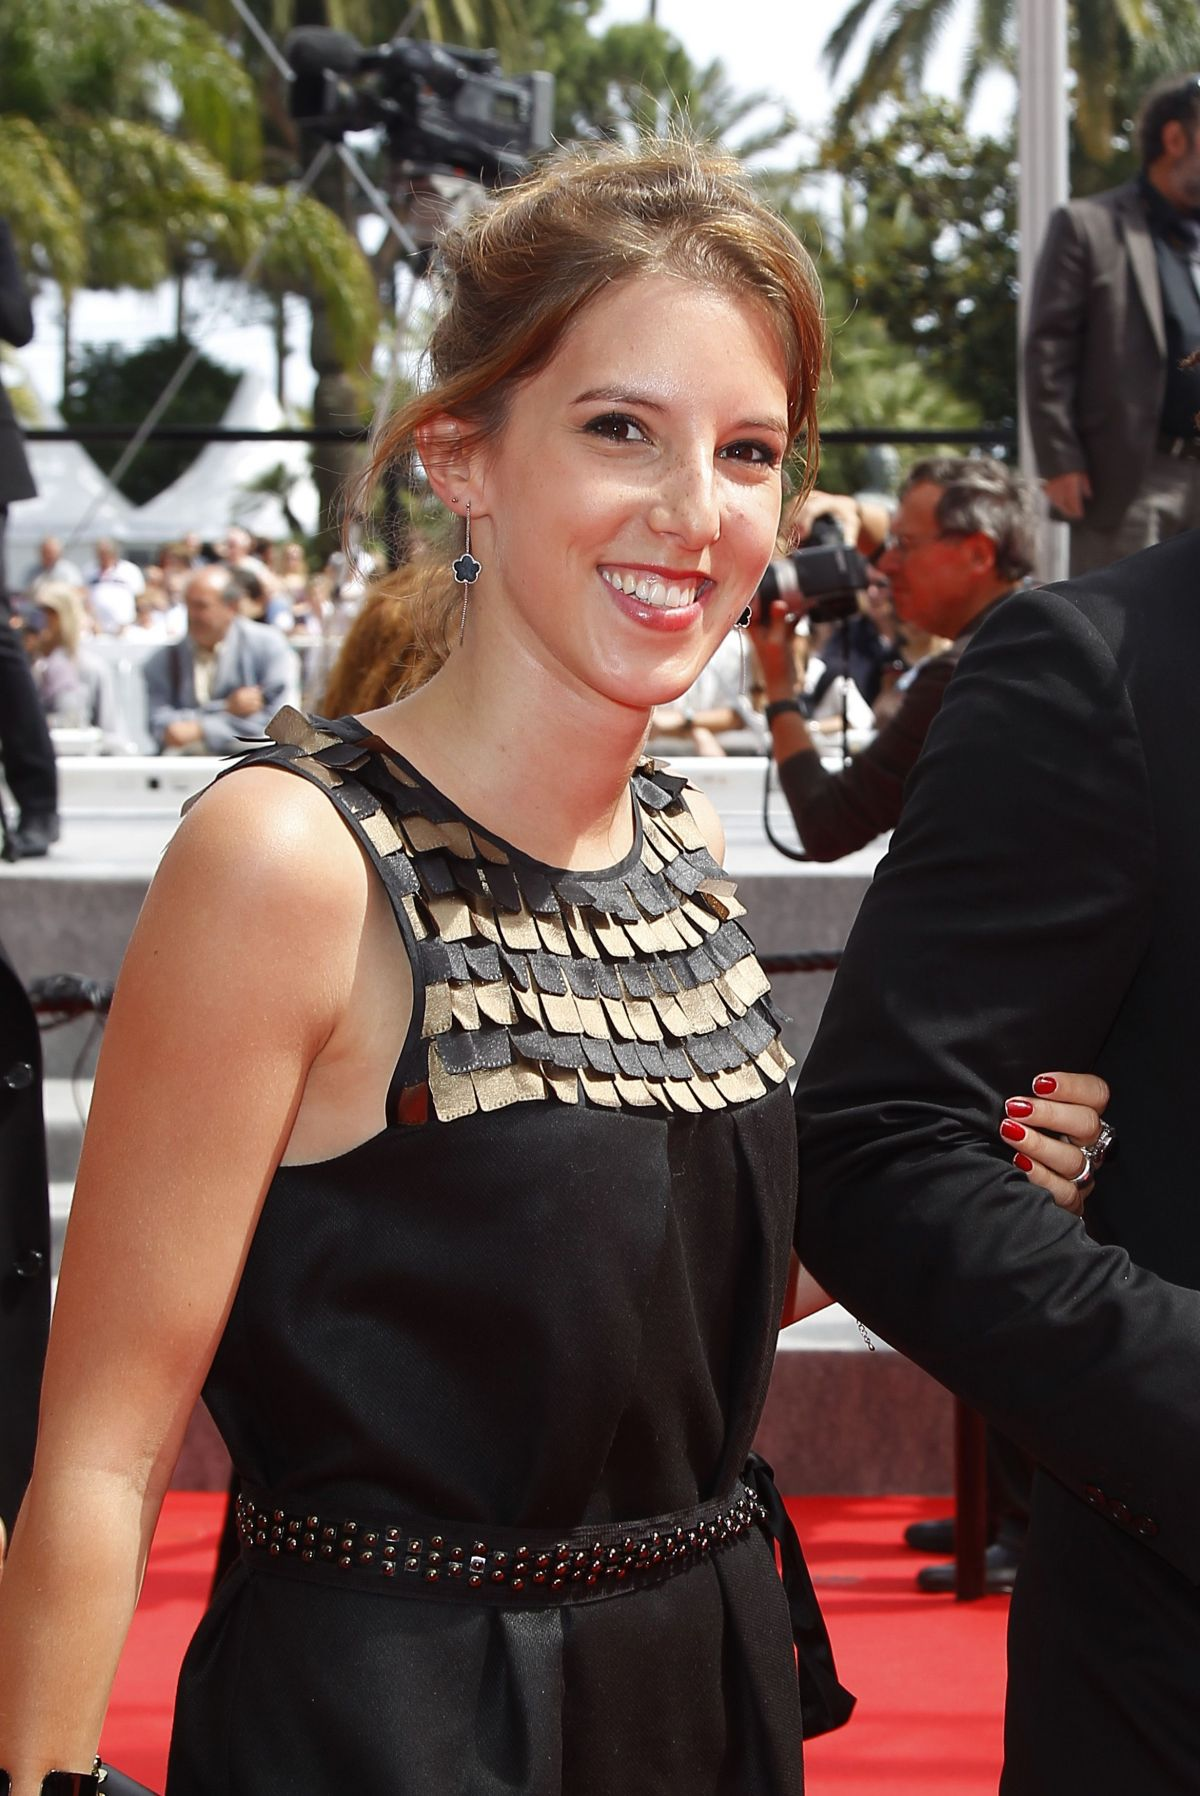 LEA FRANCOIS at Adieu au Language Premiere at Cannes Film Festival